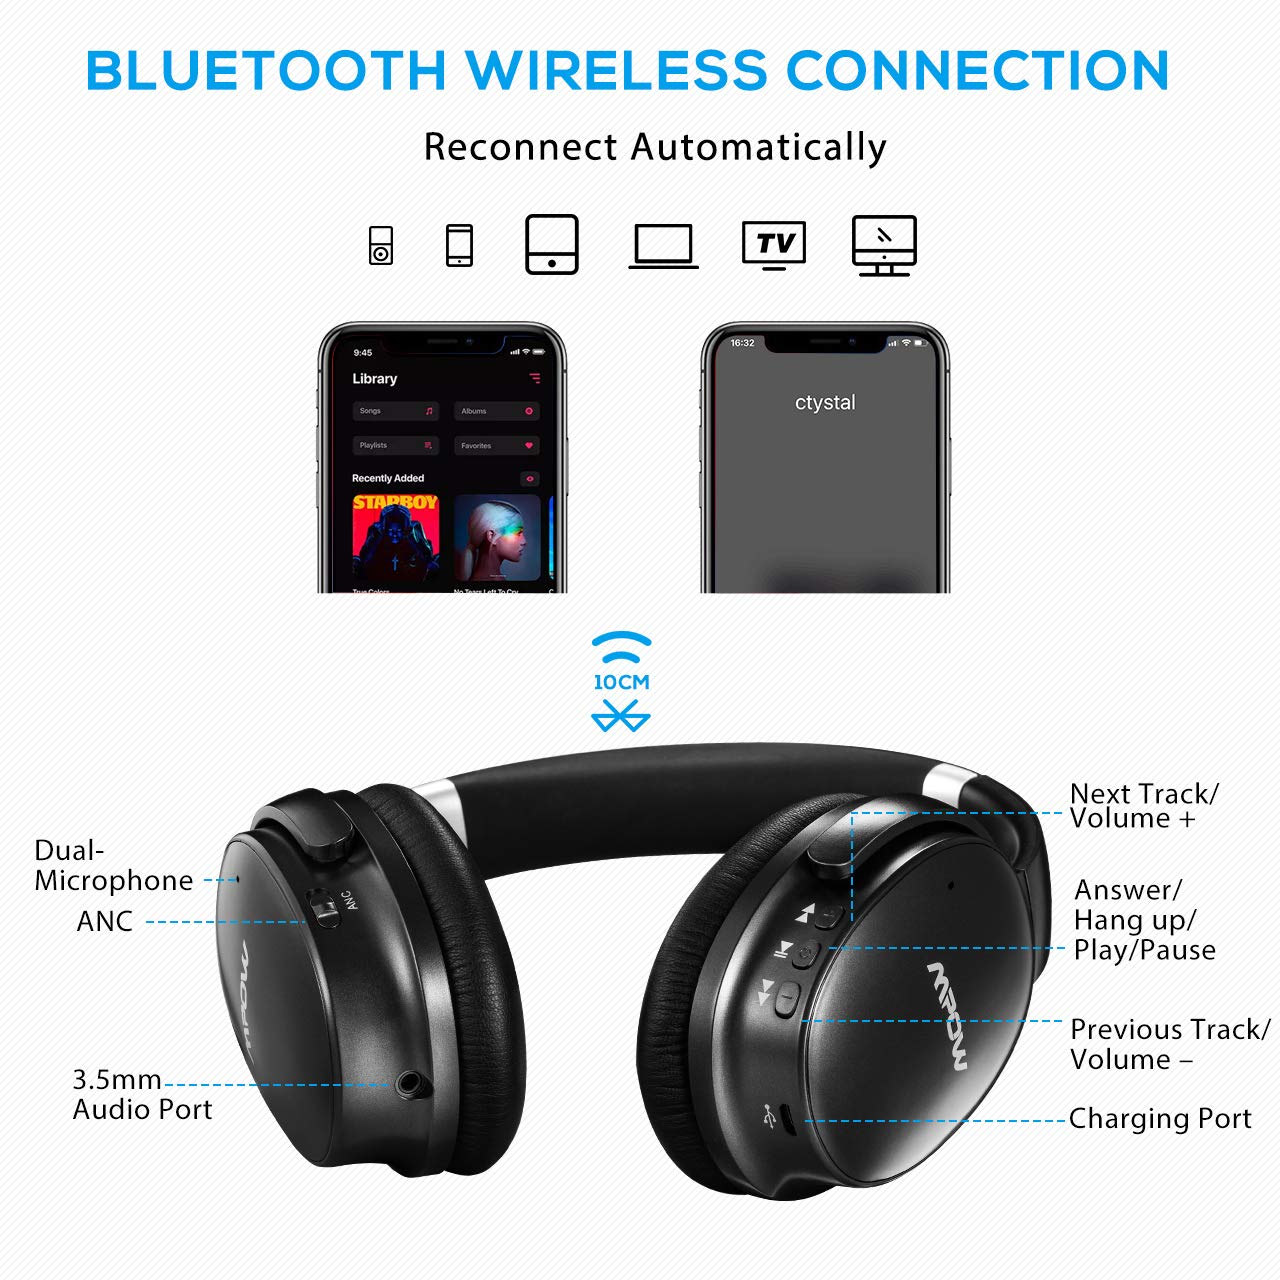 9b470261149 Mpow H10 Active Noise Cancelling Bluetooth Headphones X 1. Carrying Pouch X  1. USB Charging Cable X 1 3.5mm Audio Cable X 1. User Manual X 1